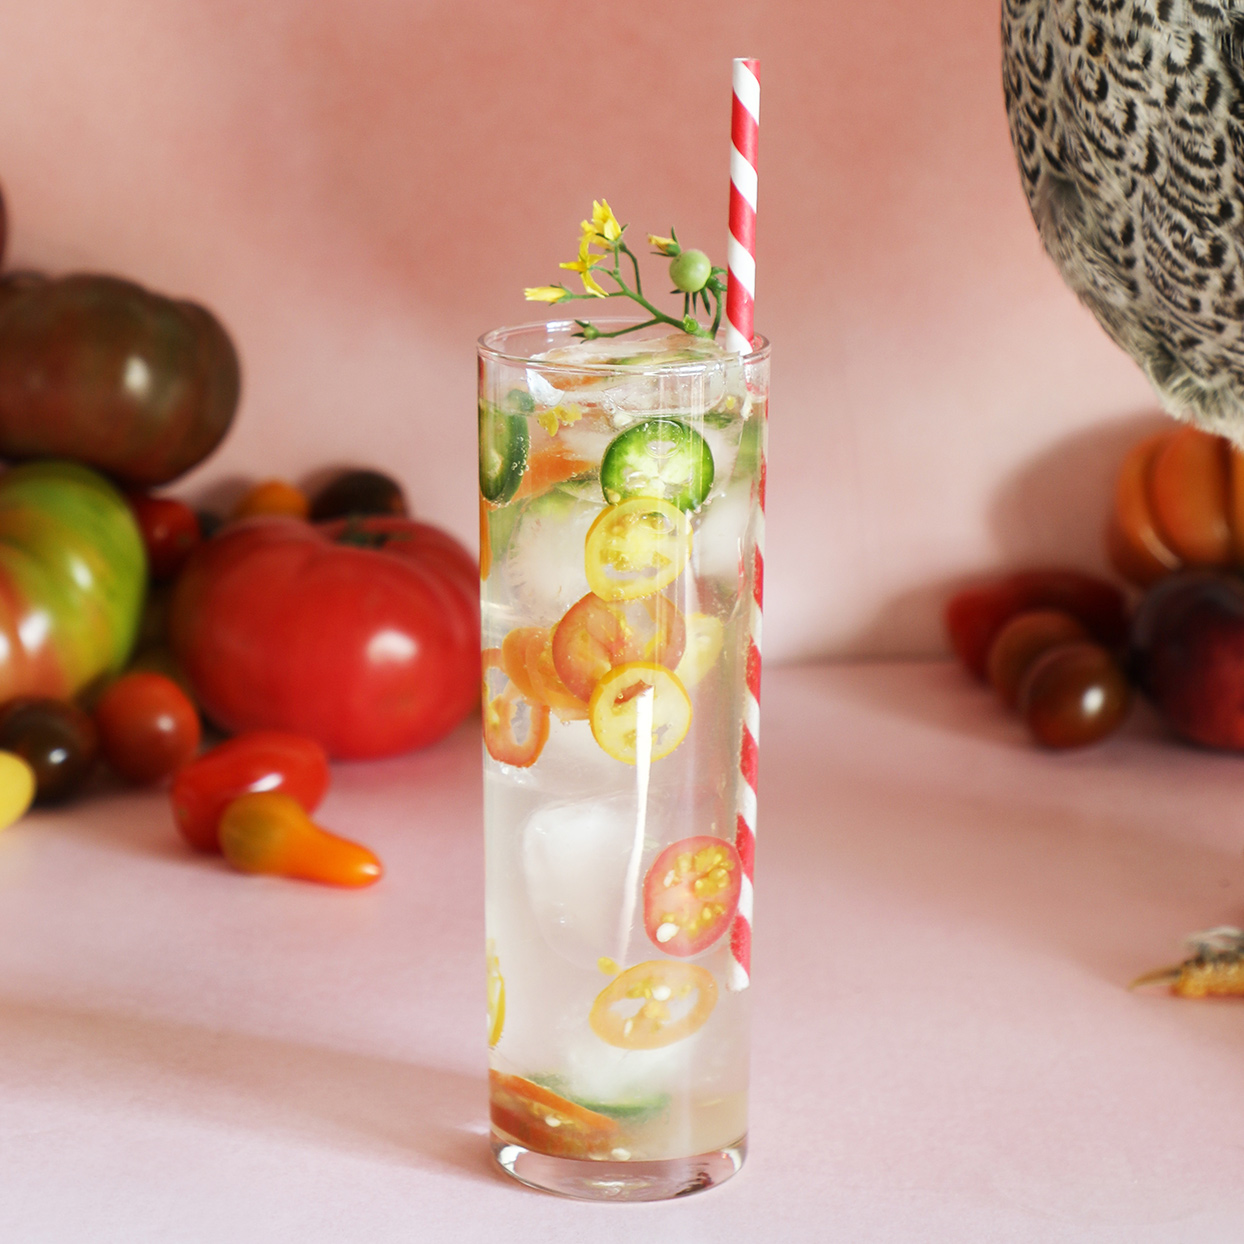 Spicy Tomato Vodka Soda